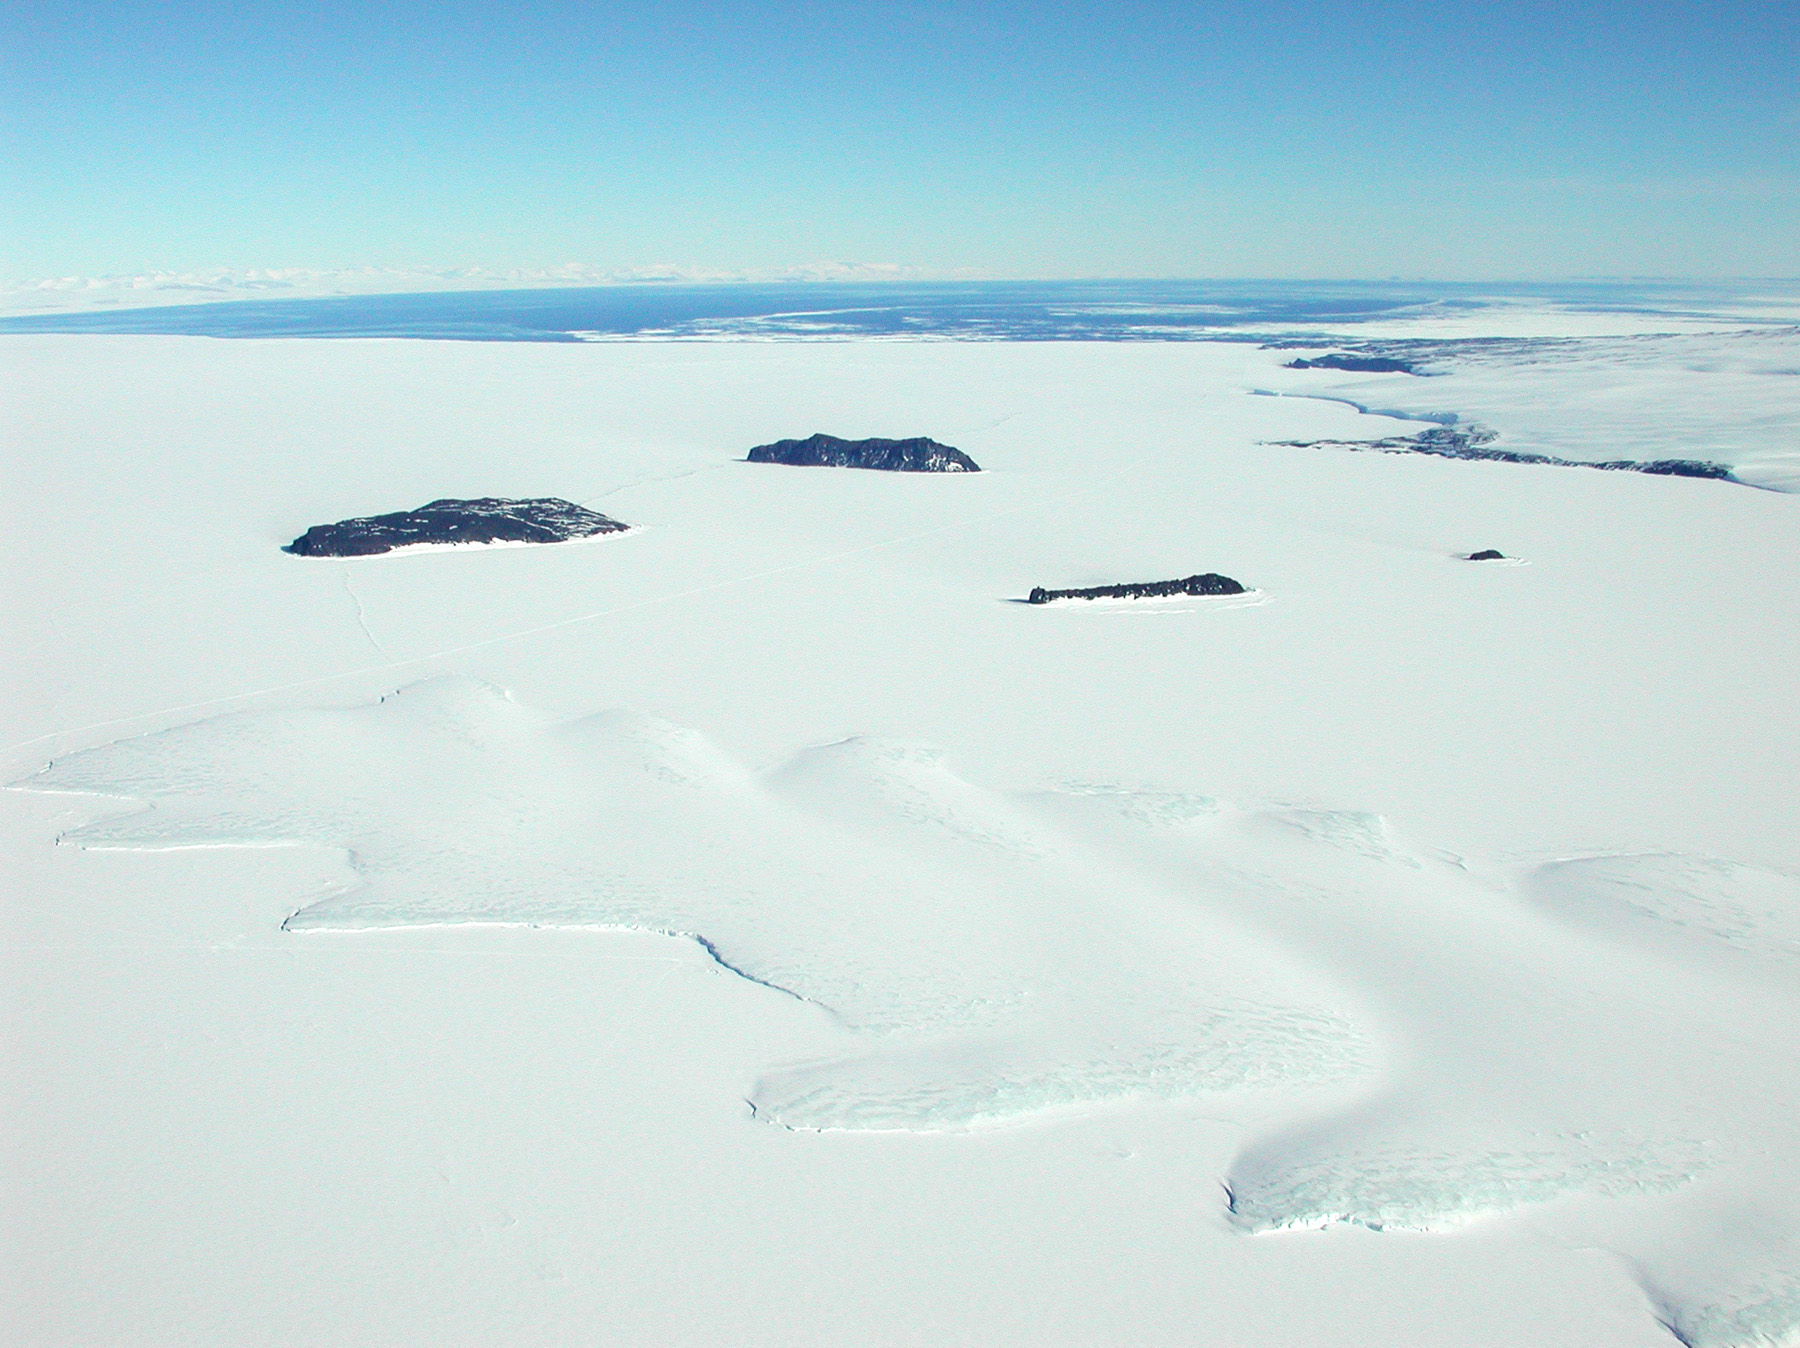 Aerial view of ice covered ocean, with small islands portruding through the ice.